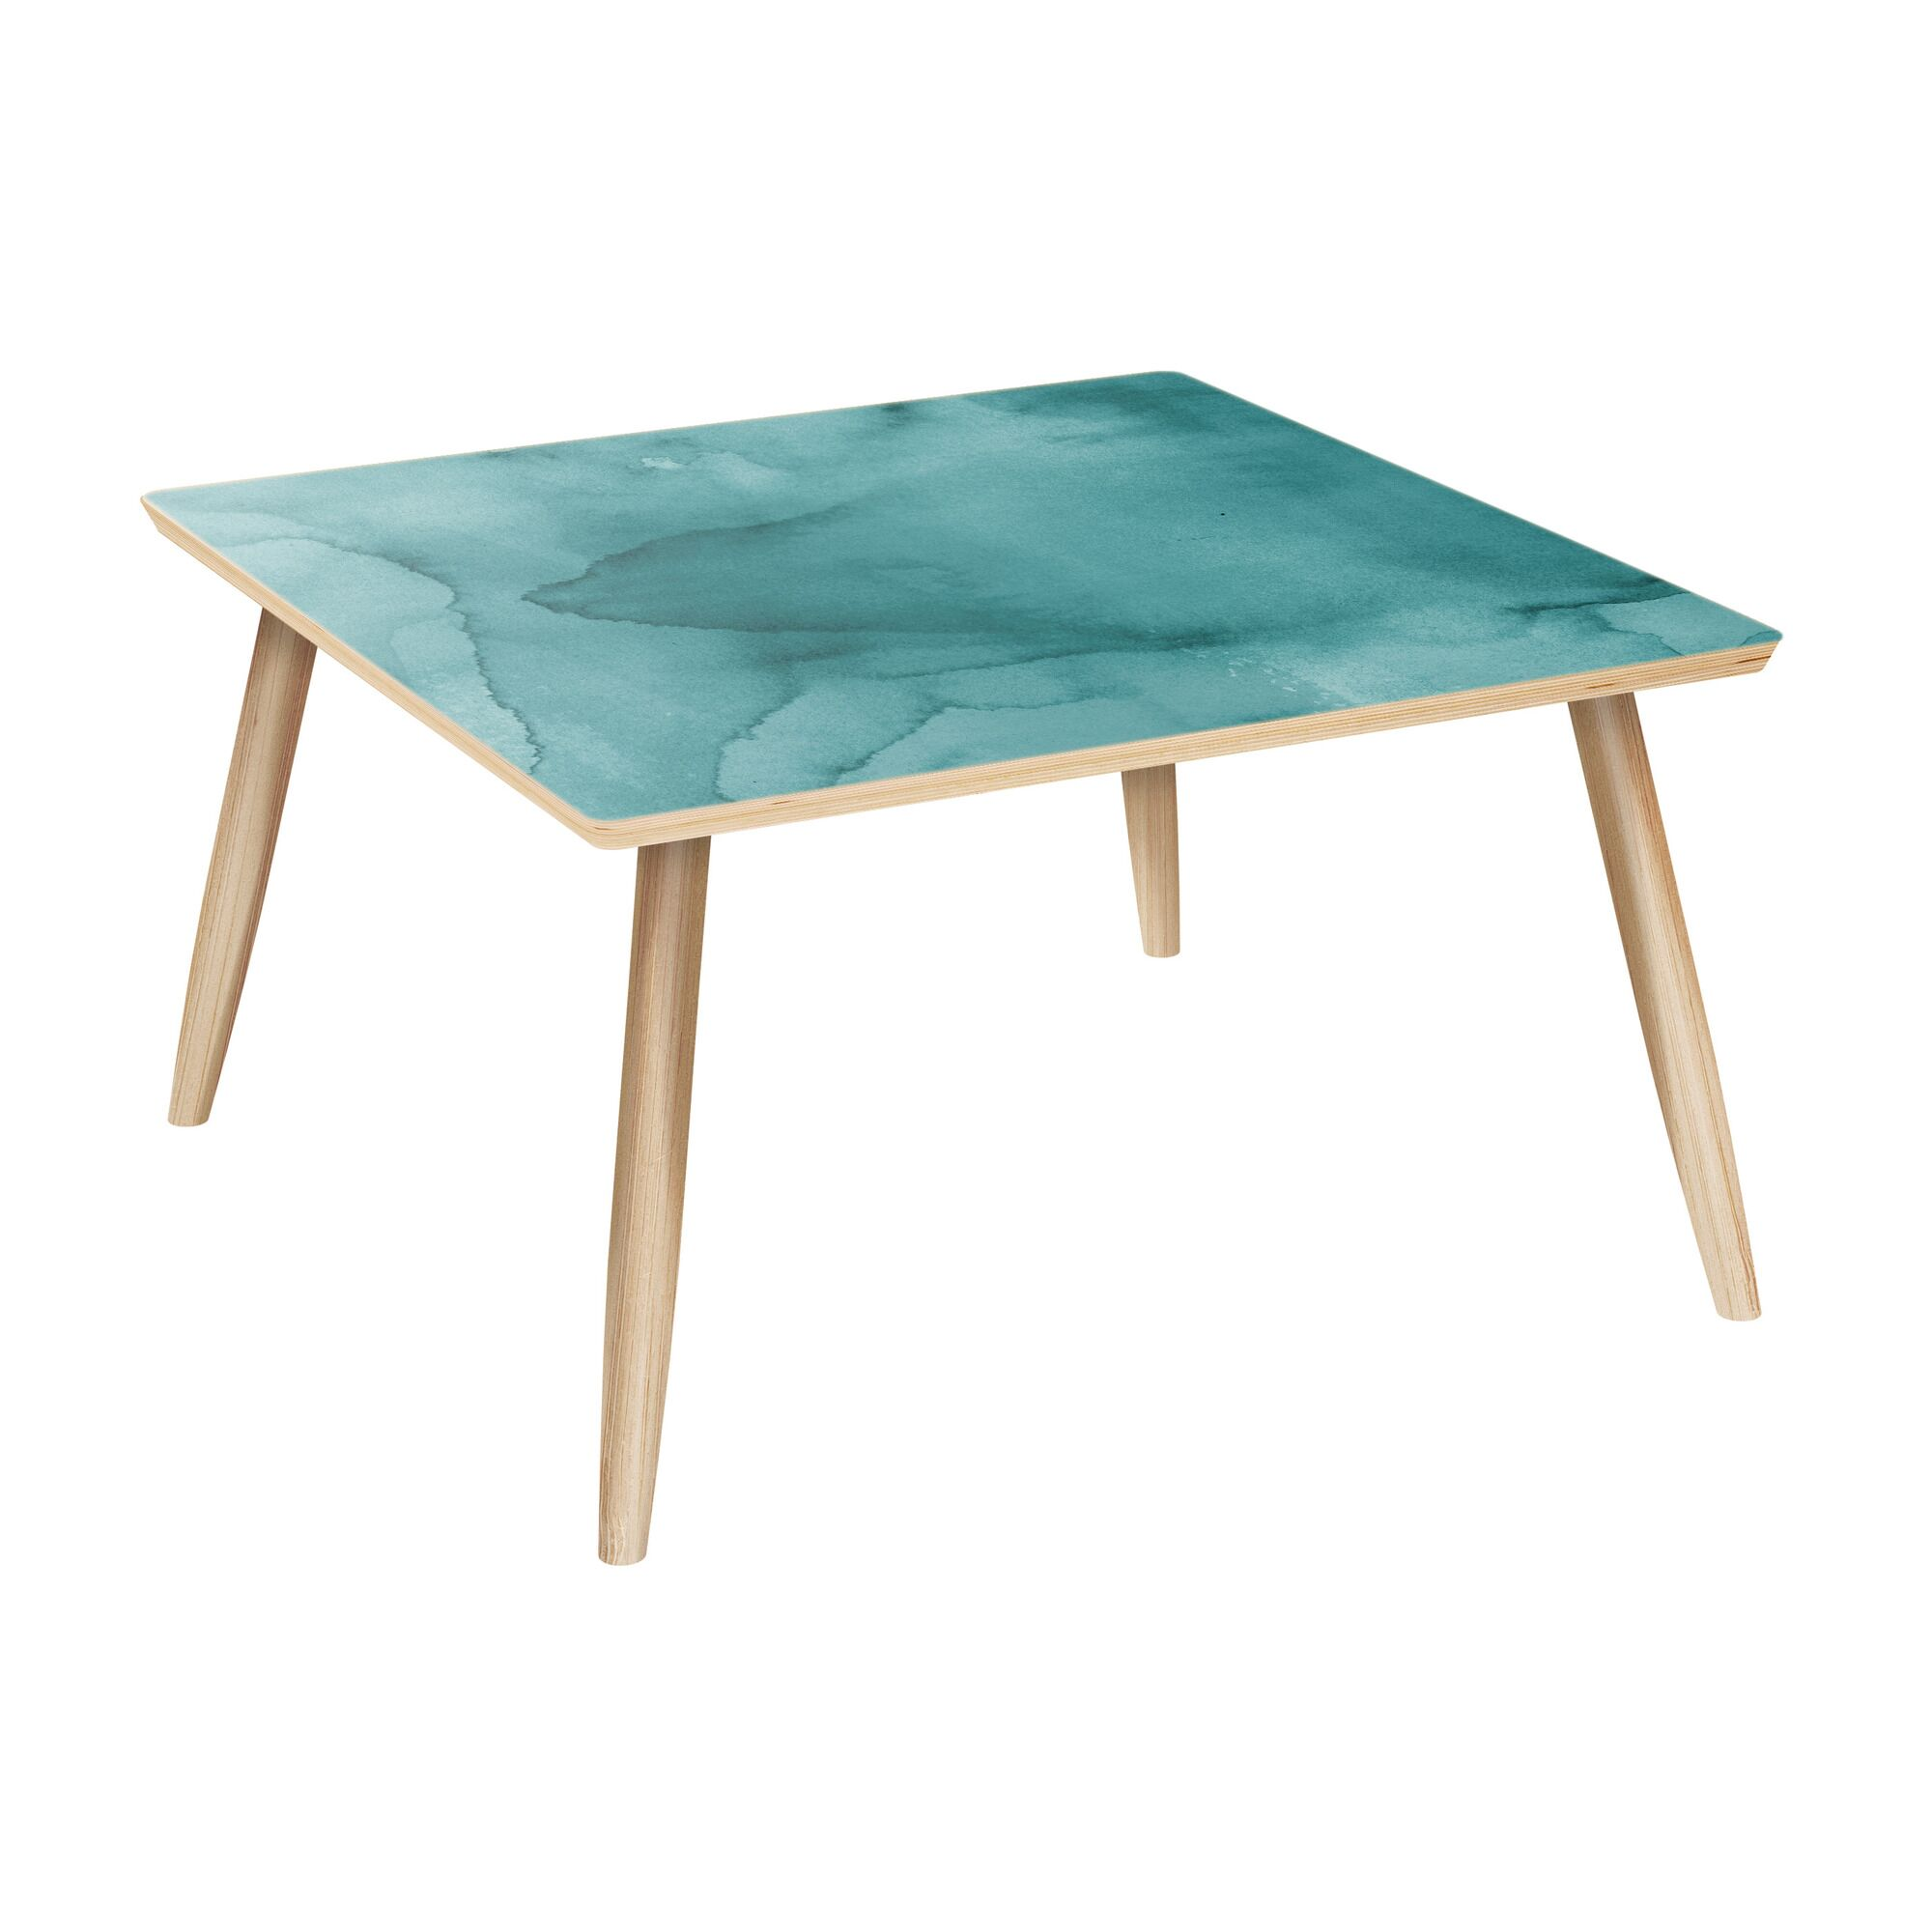 Malinda Coffee Table Table Base Color: Natural, Table Top Color: Pink